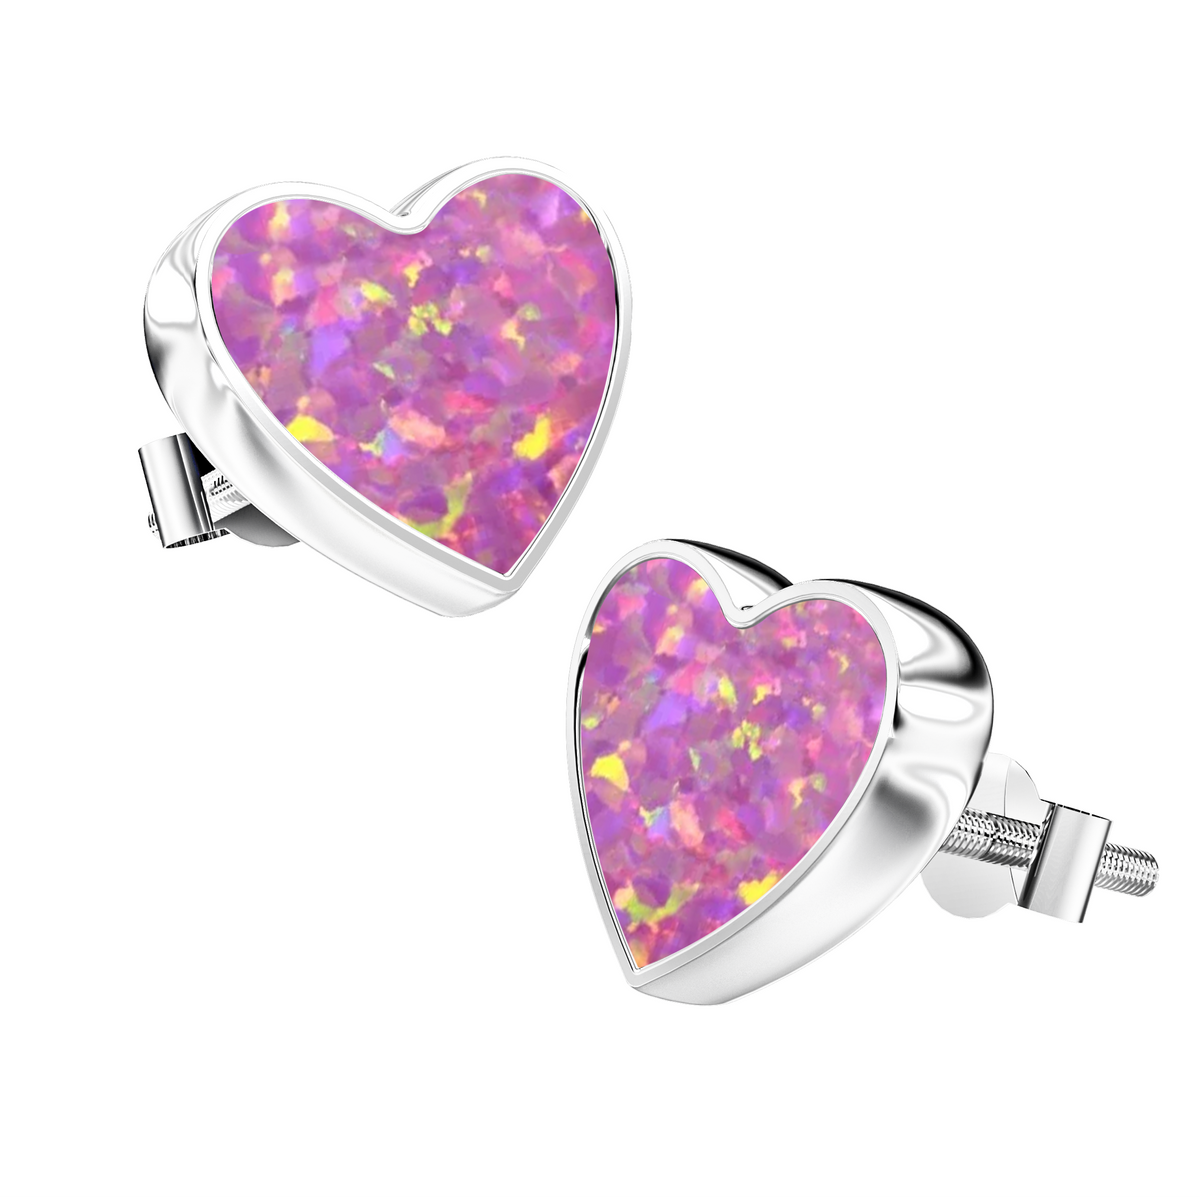 Aura-Star Ashes Infused Earrings Hearts - Urns UK